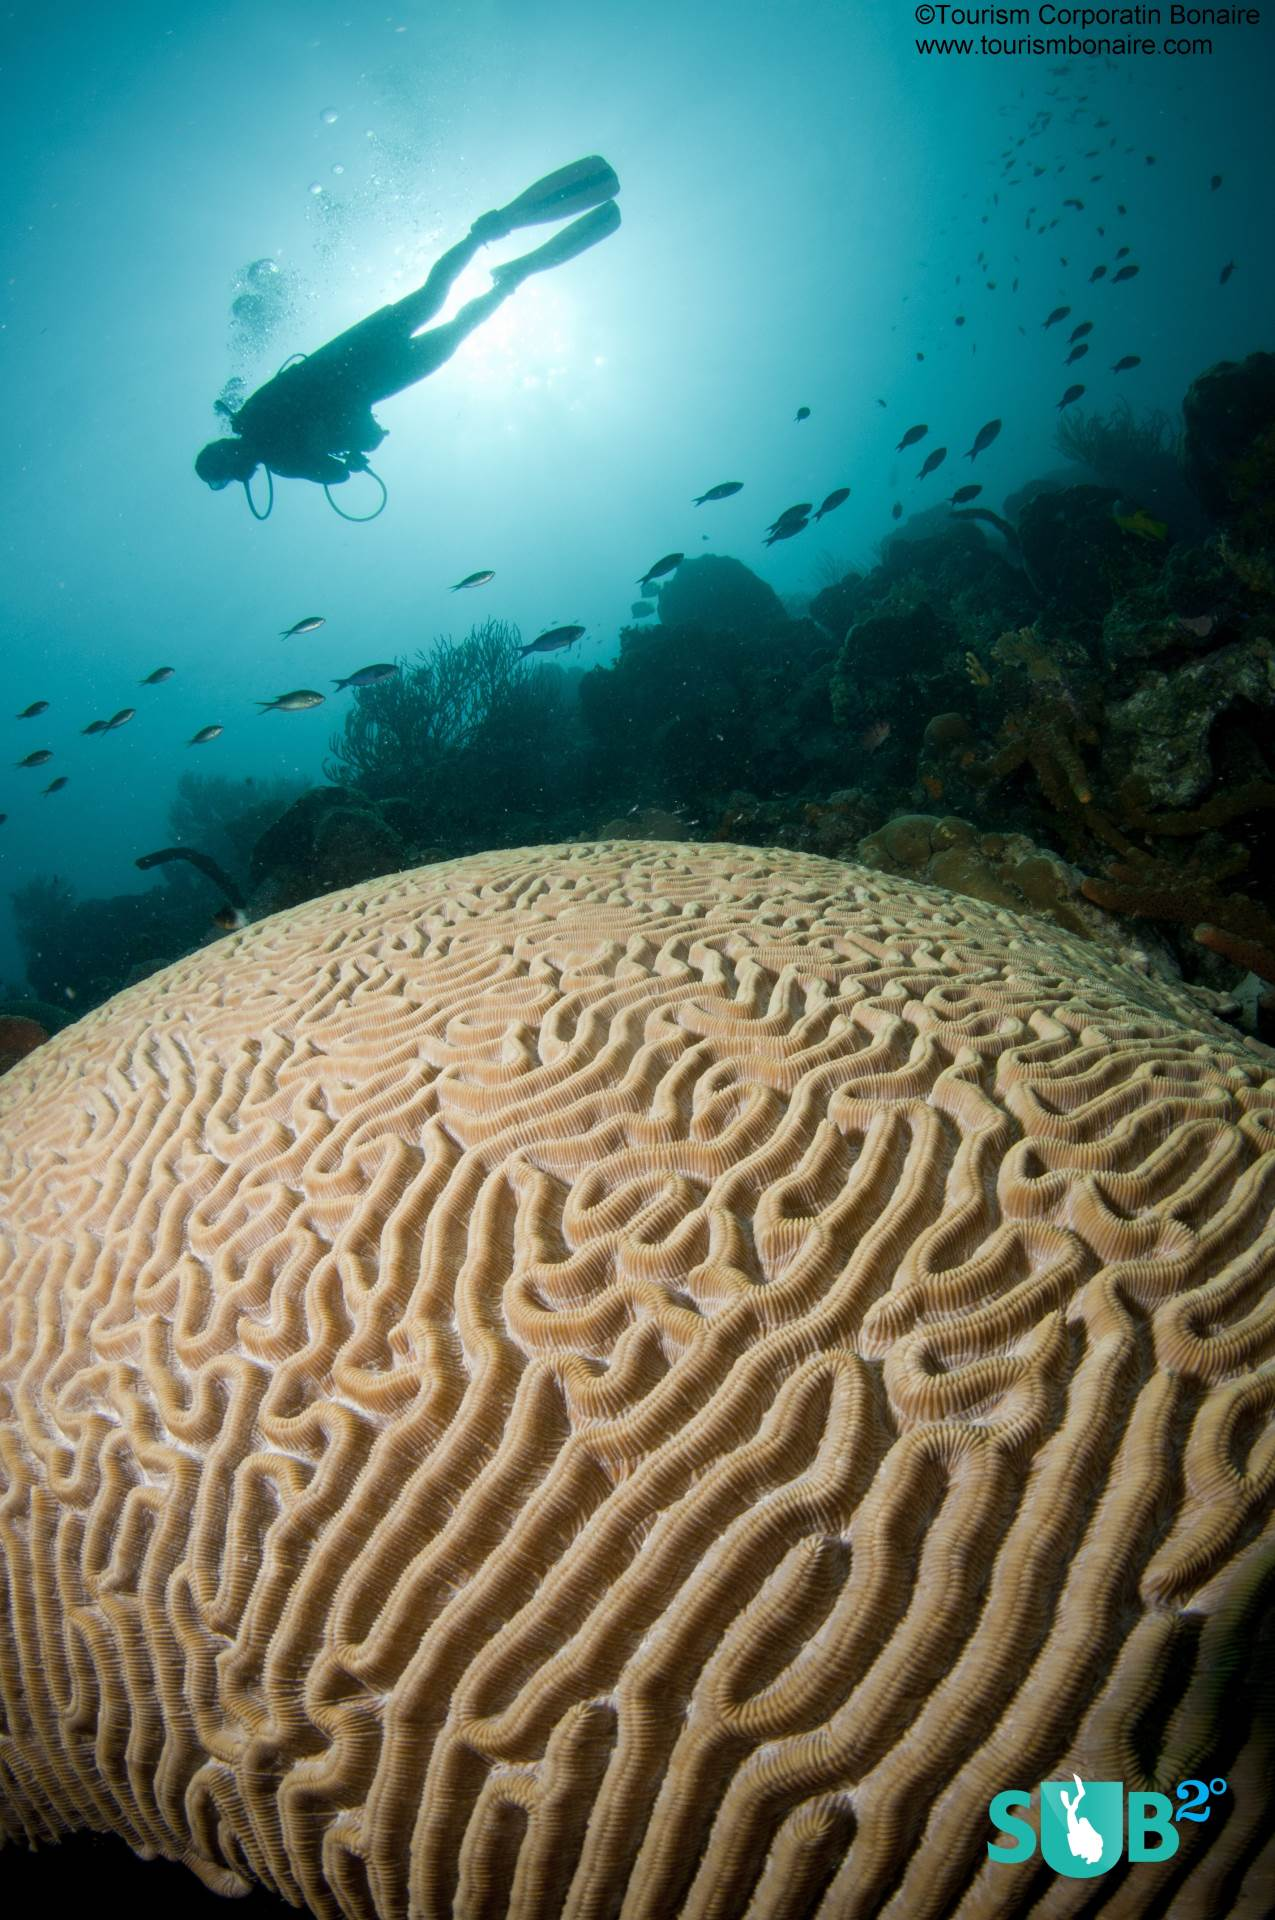 Giant Hard Corals Dominate at the Marine Park